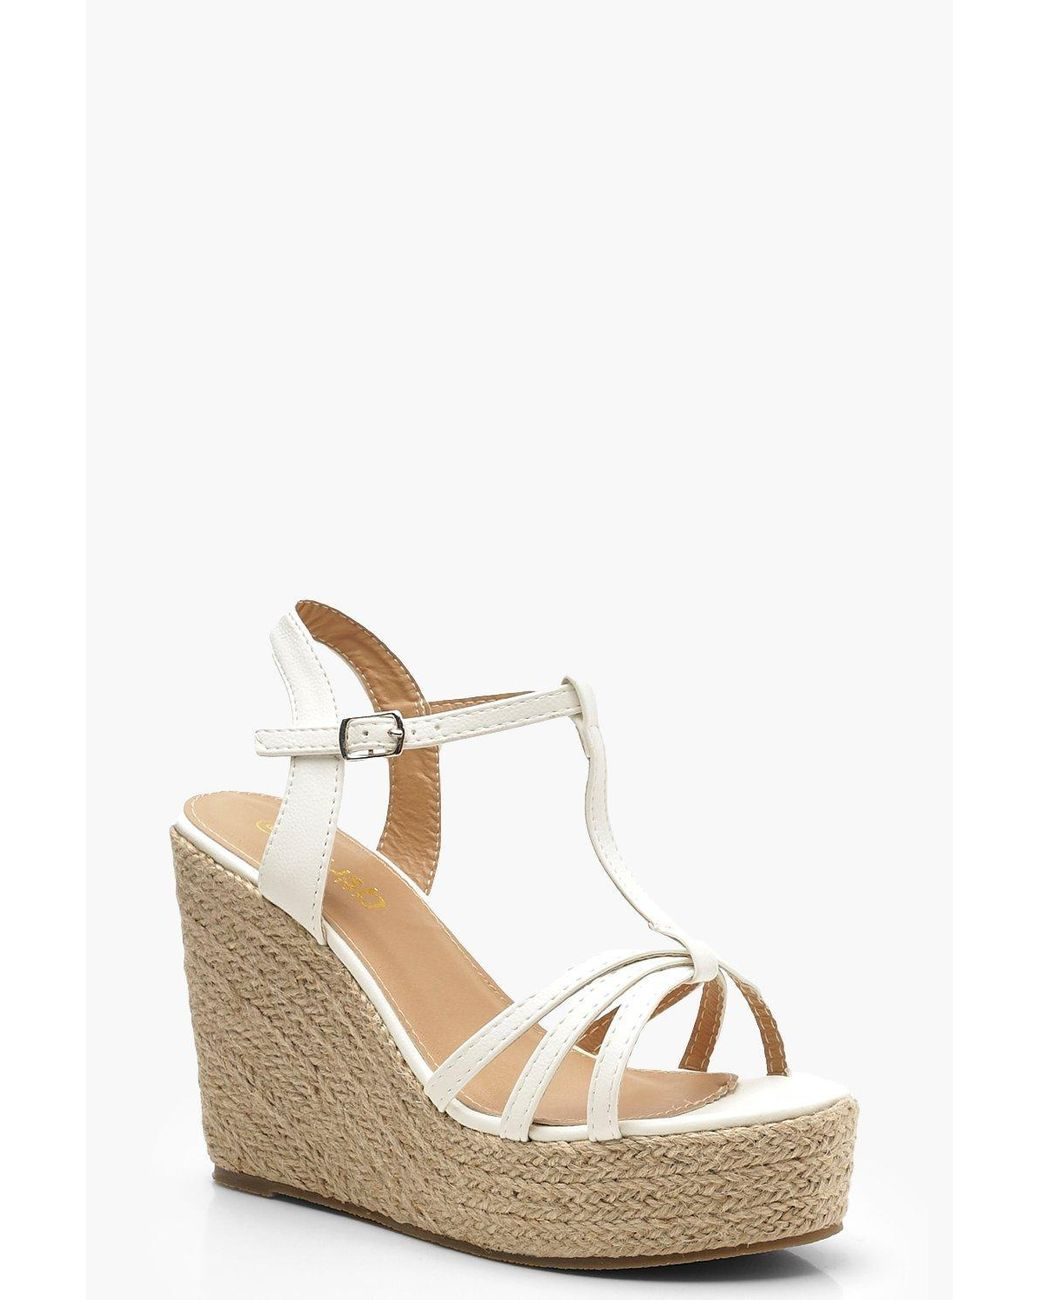 dbf42901bac Womens Caged Peeptoe Espadrille Wedges - White - 7